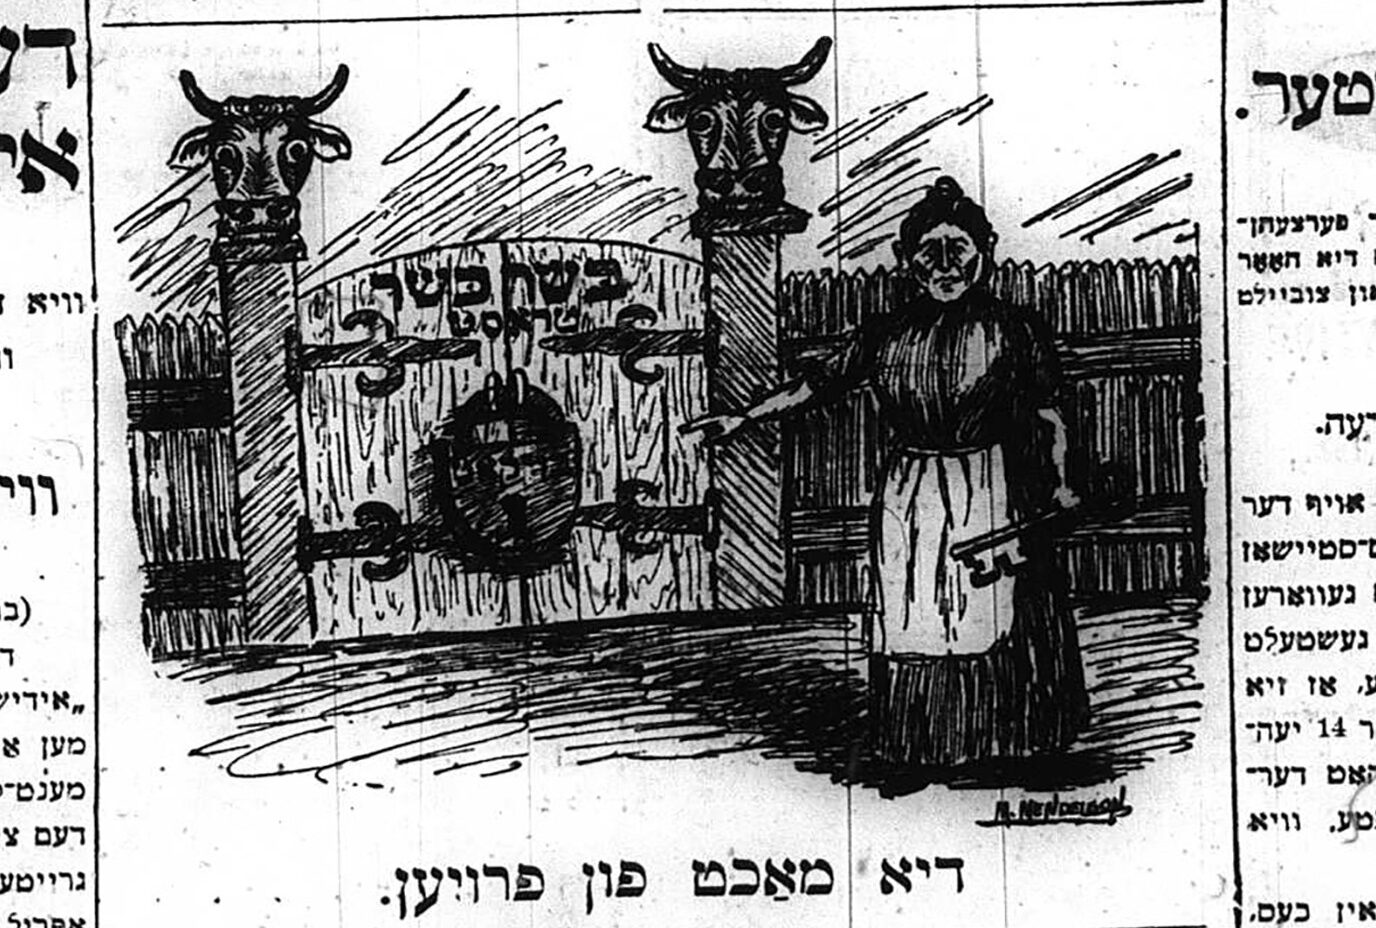 Old newspaper drawing of two bull heads on a locked gate with Yiddish writing on its doors. A Jewish woman stands next to it, holding a key.